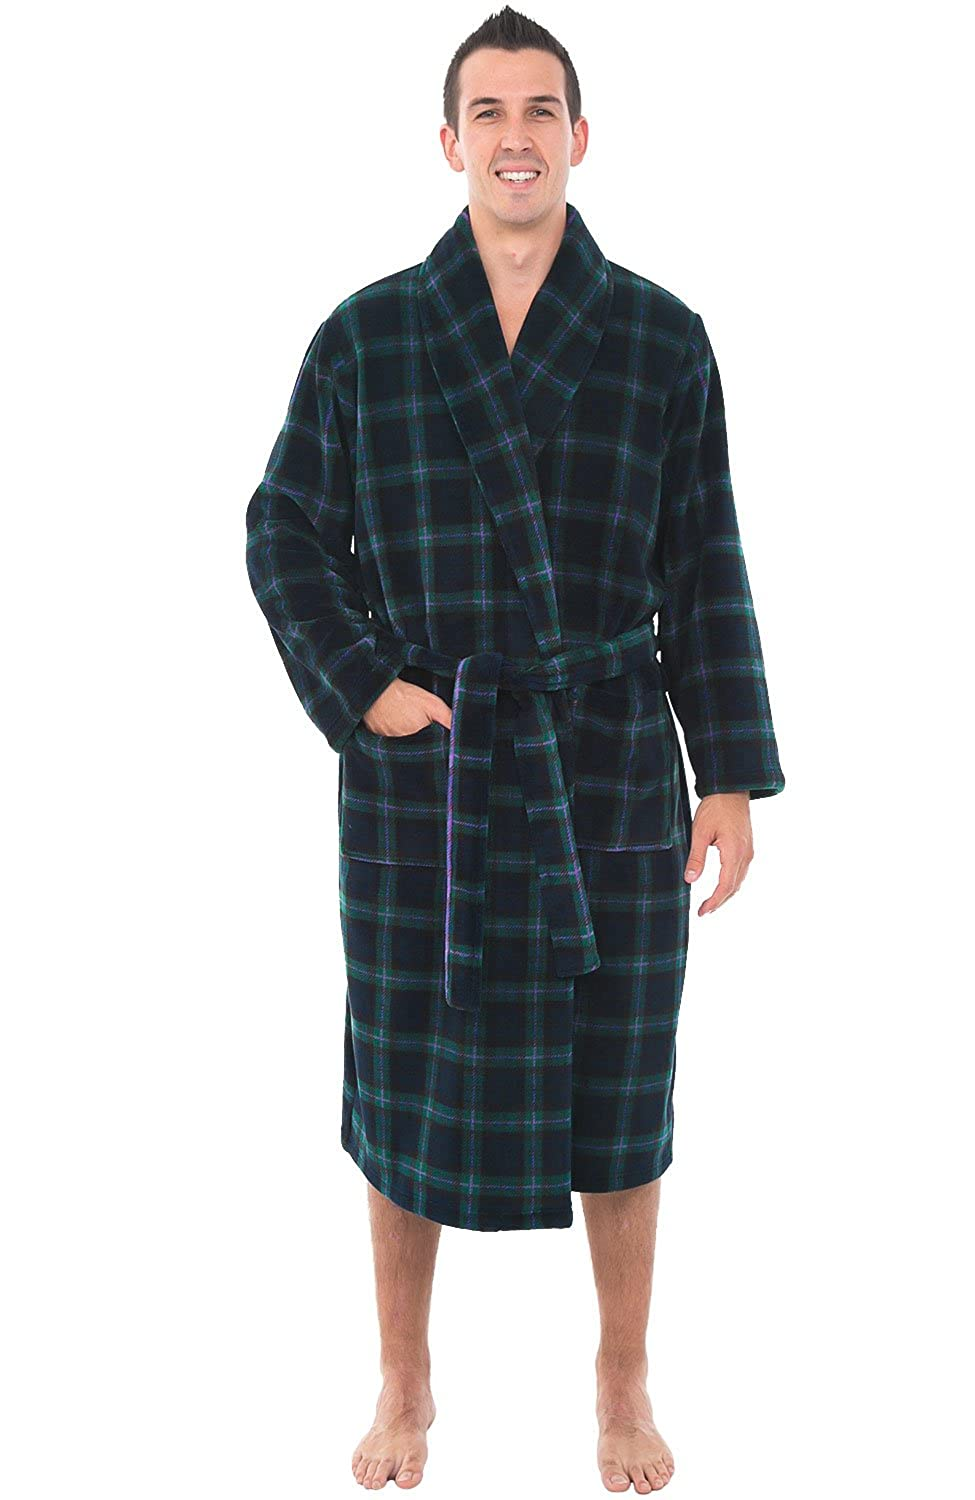 Alexander Del Rossa Mens Plaid Fleece Robe, Shawl Collar Bathrobe A0114-Plaids